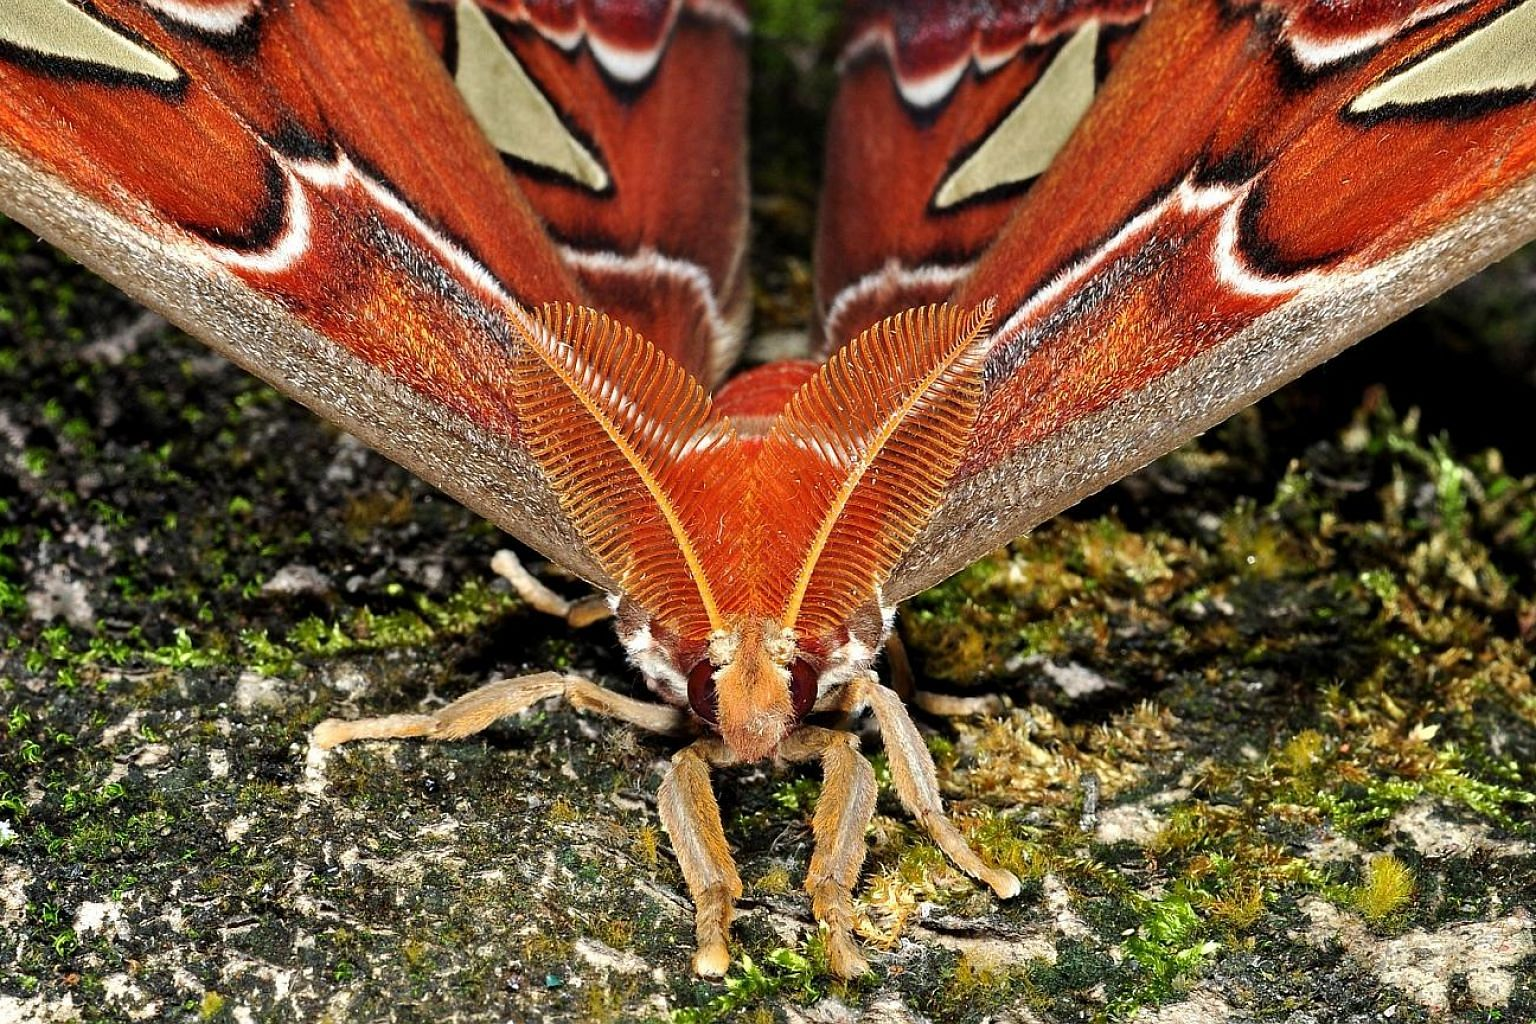 The raffles emerald moth (Tanaorhinus rafflesii) is named after the founder of Singapore, Sir Stamford Raffles, who was also a keen naturalist. The atlas moth (Attacus atlas) is one of the largest moth species in the world. It can be found in gardens